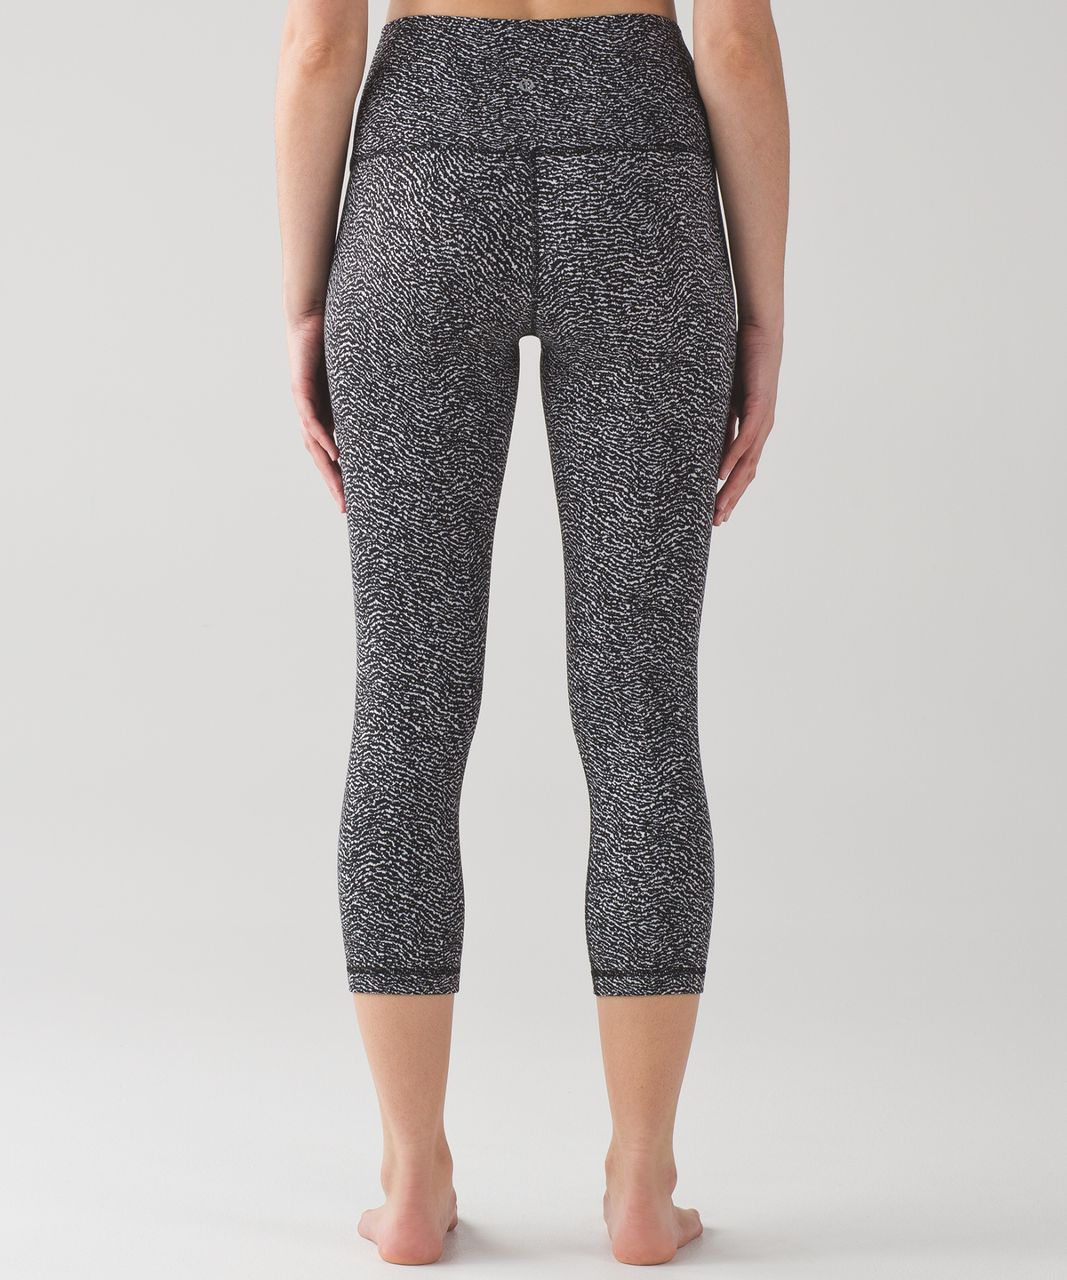 "Lululemon Wunder Under Crop (Hi-Rise) (21"") - Luon Ripple Jacquard Black White"